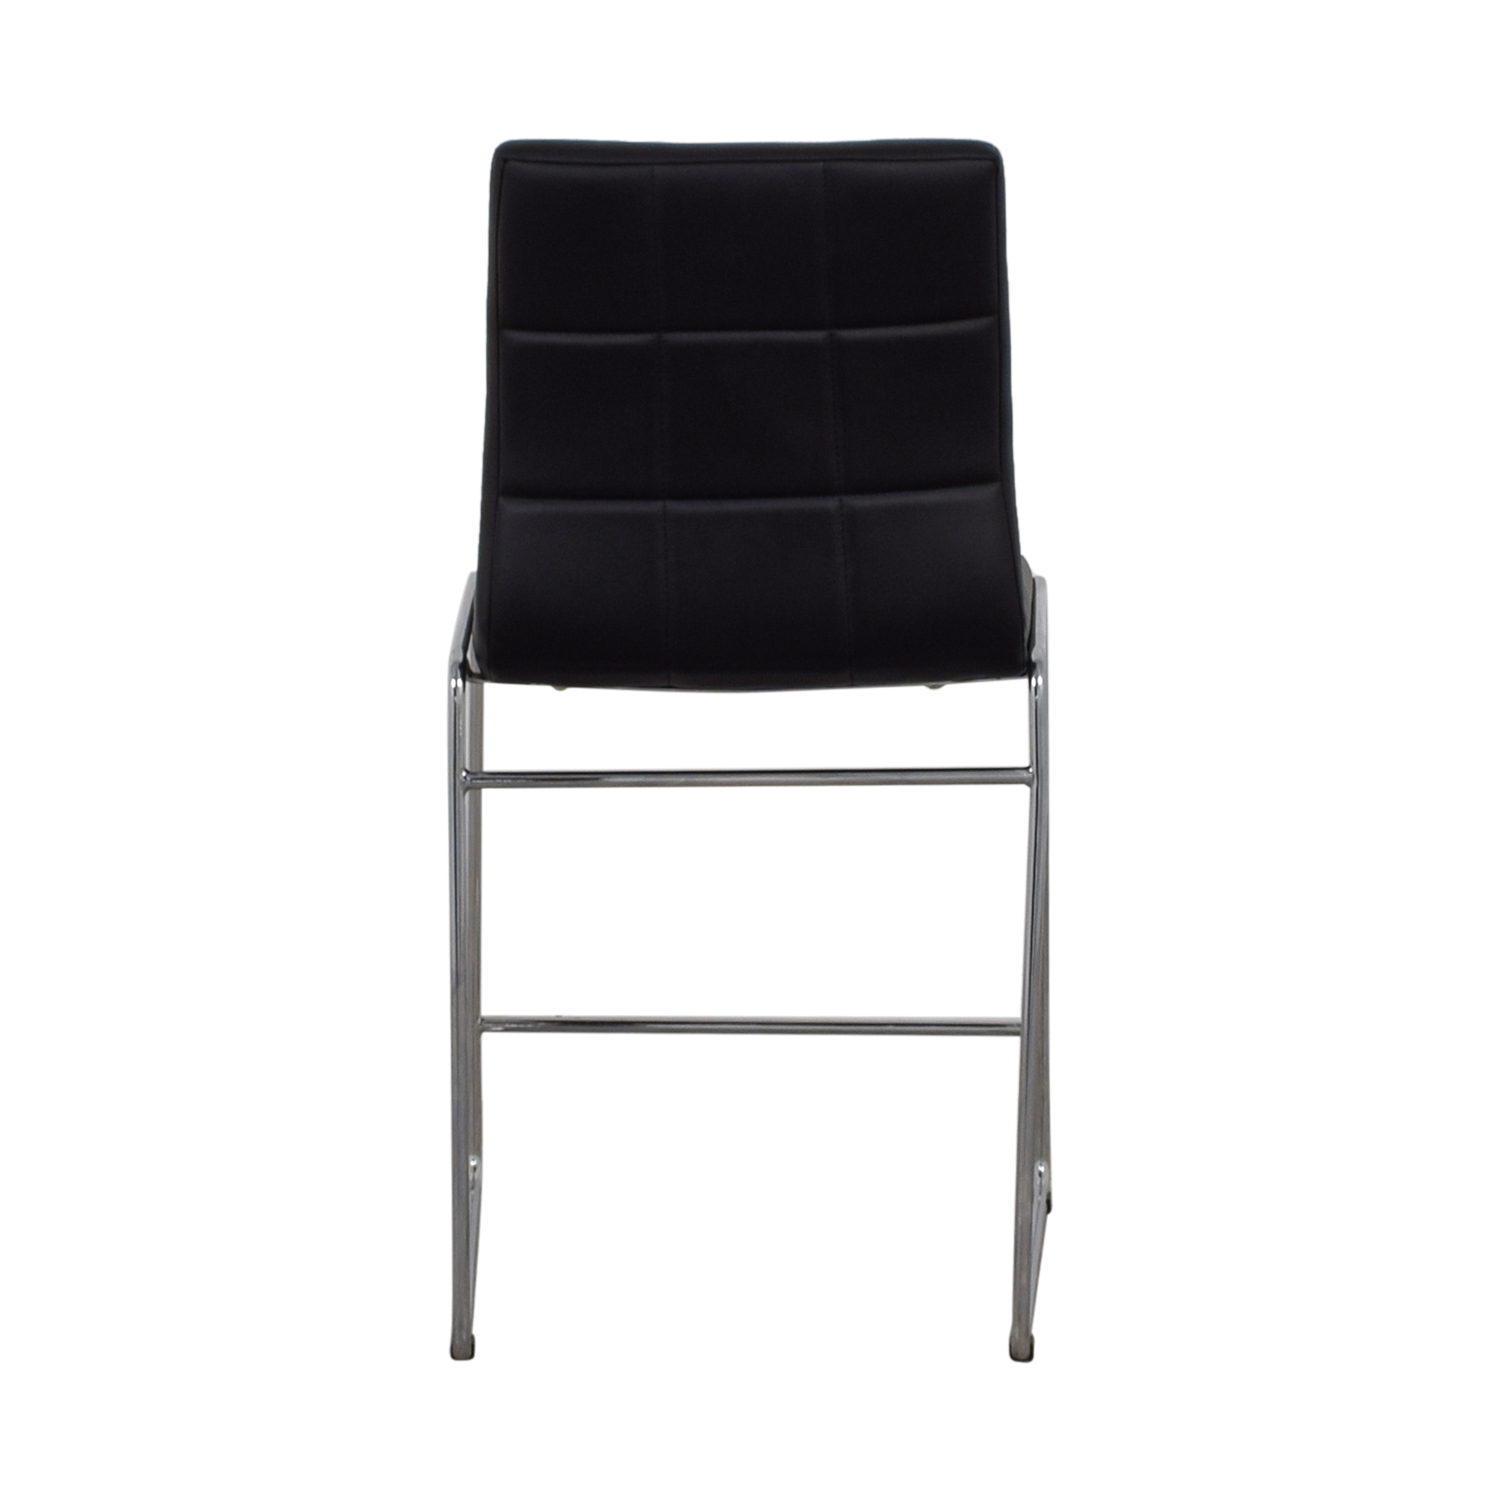 Black Leatherette Bar Stool on sale